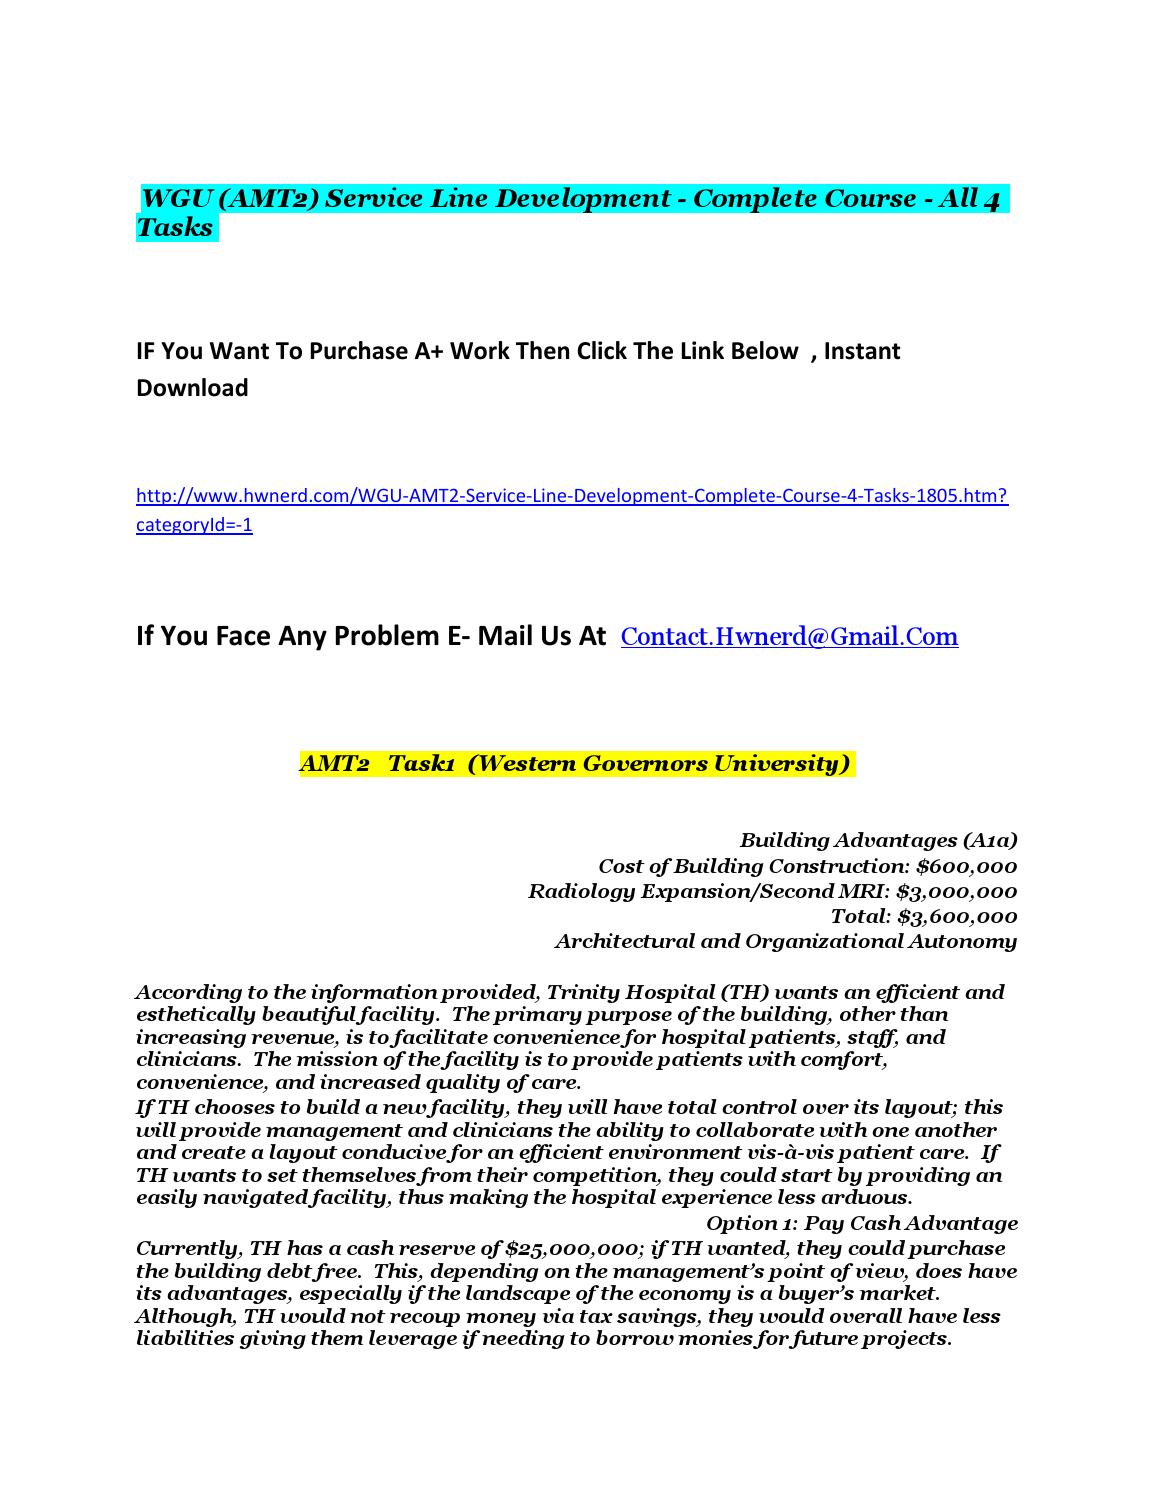 Wgu szt 1 task 4 Research paper Sample - August 2019 - 1134